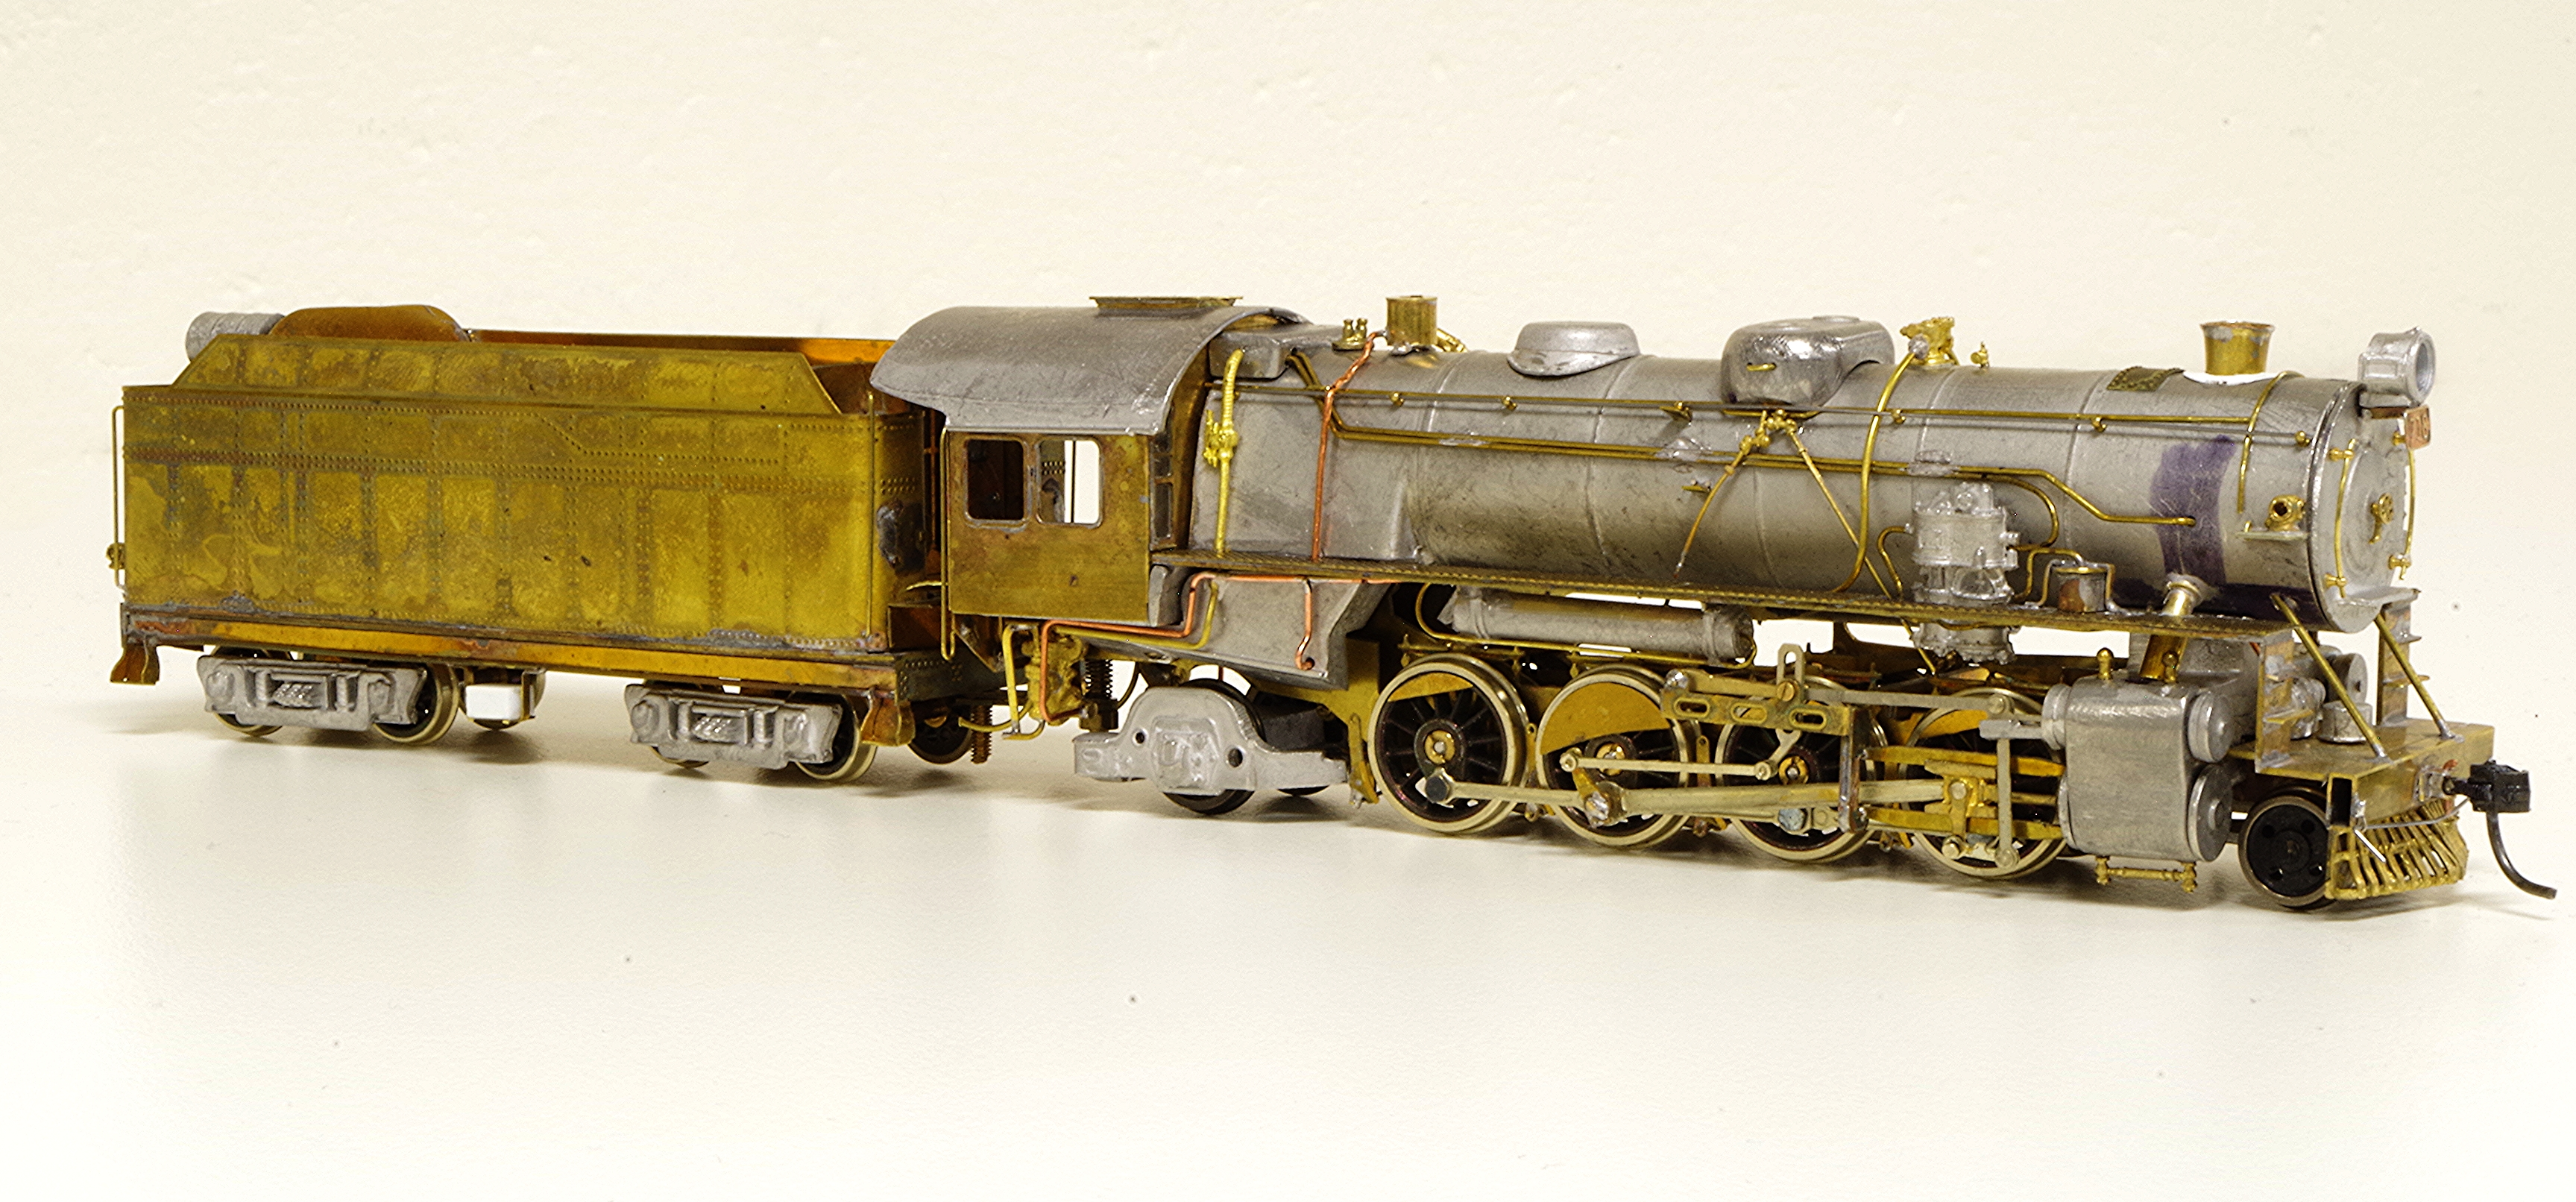 HO scale 710 Class BGM kit of No.718